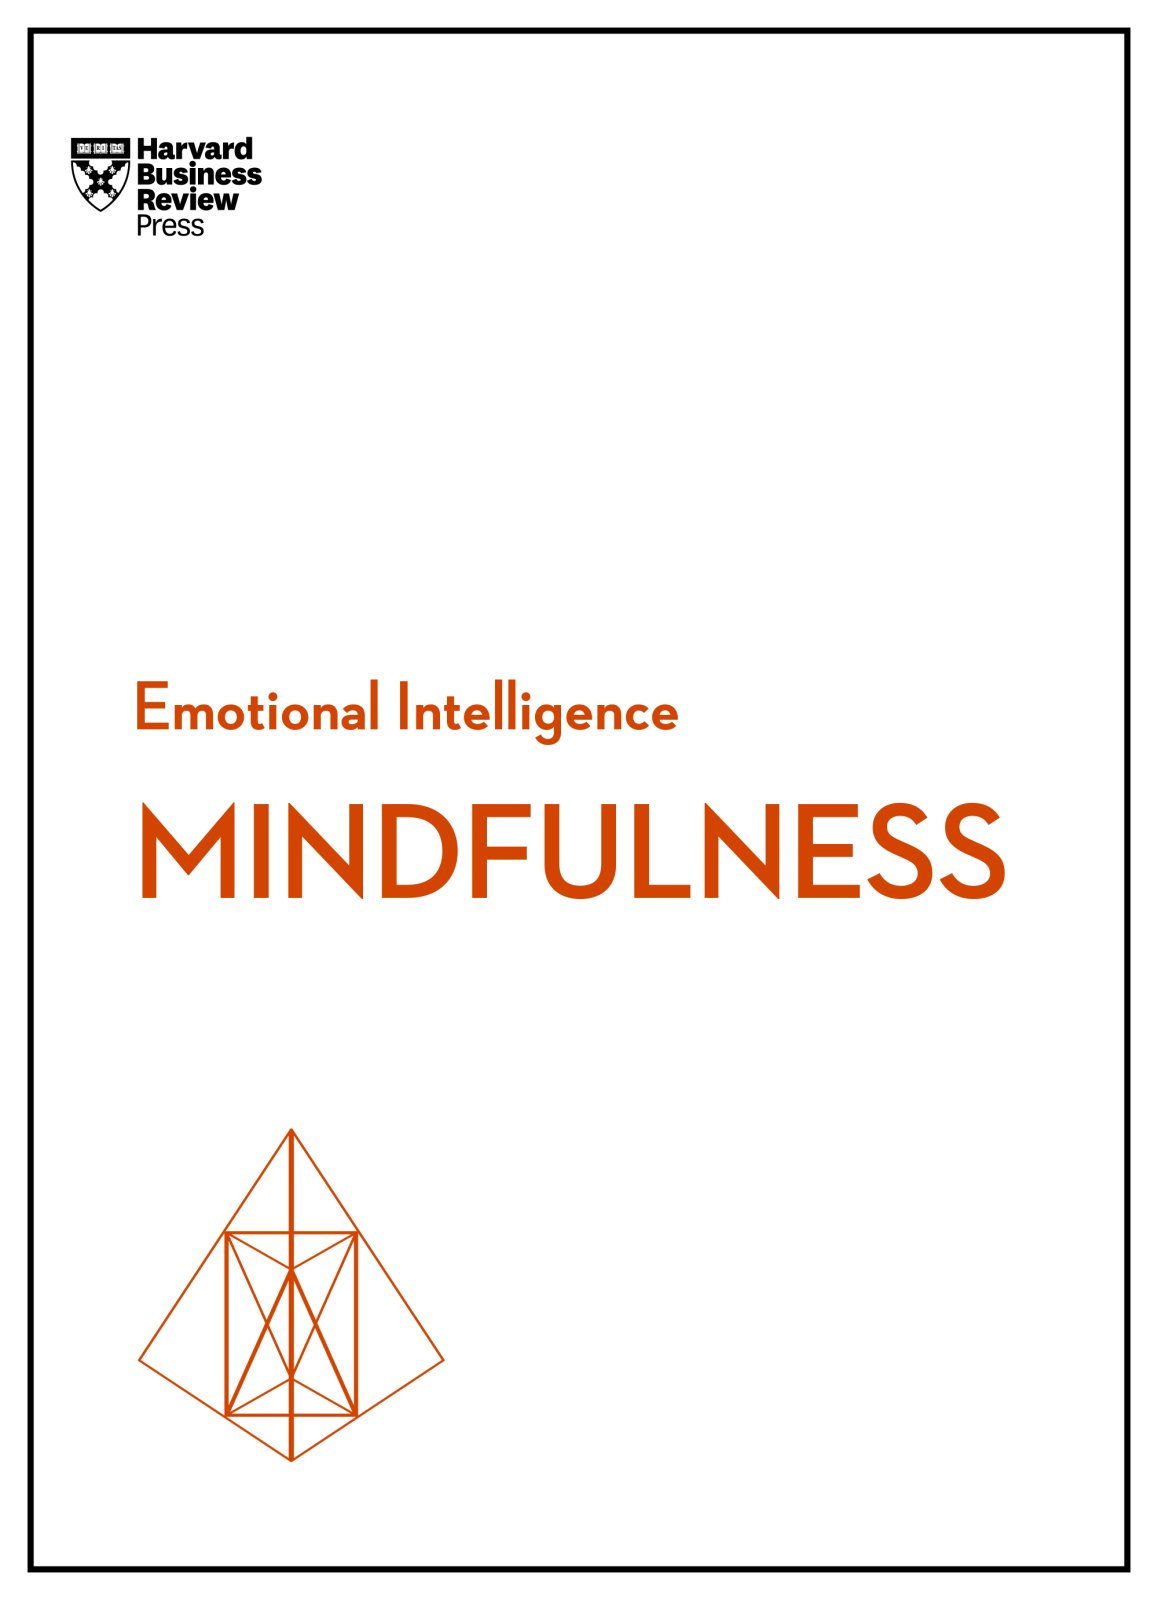 Mindfulness (HBR Emotional Intelligence Series)